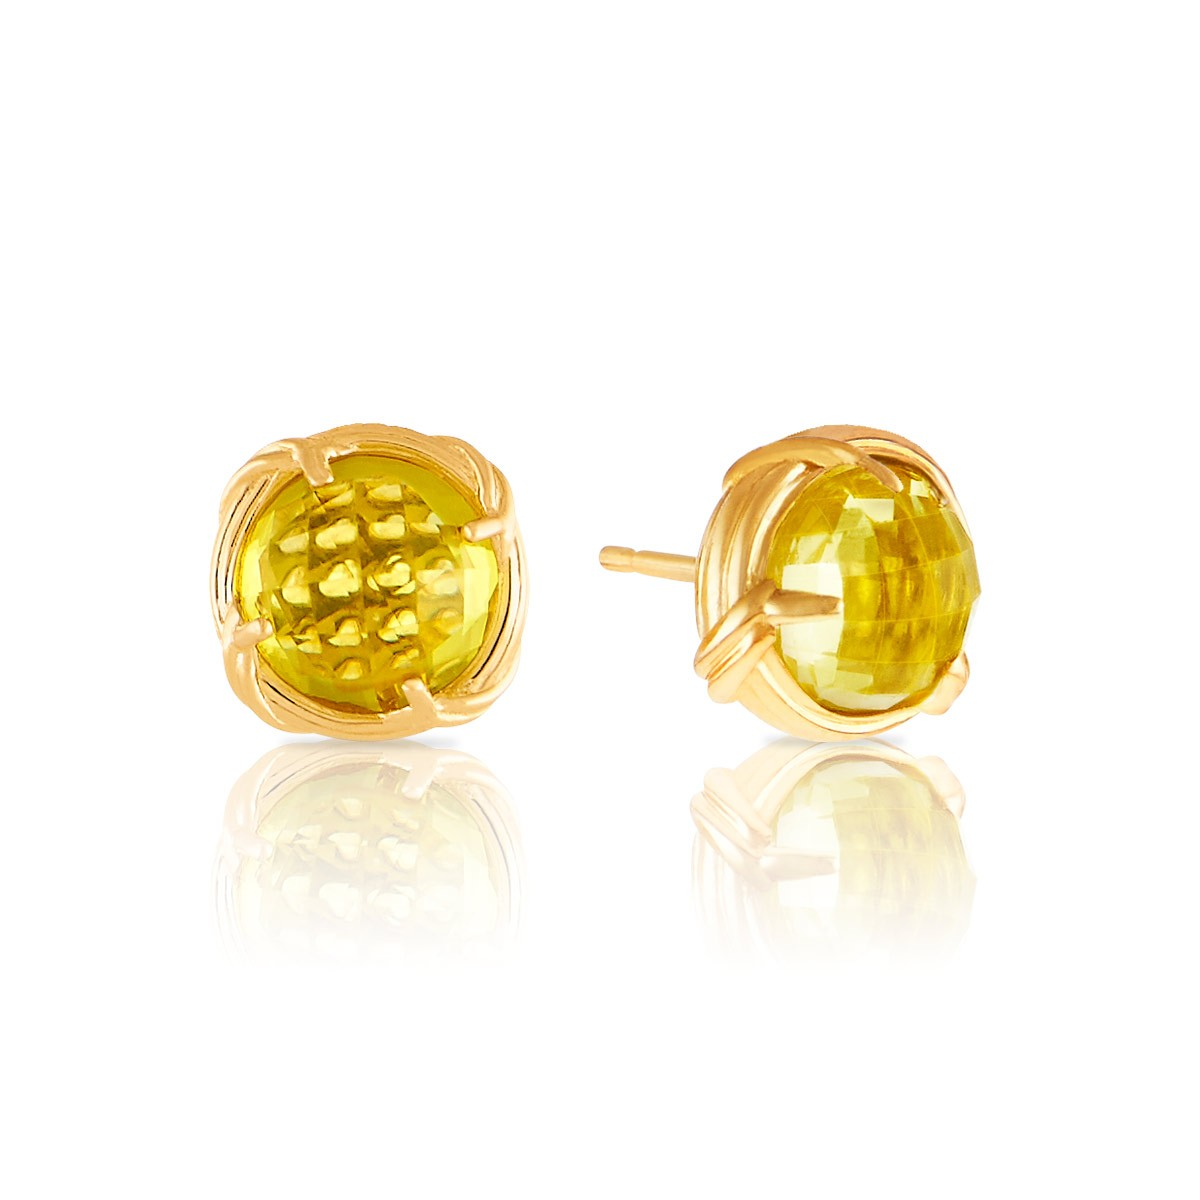 Peter Thomas Roth Ribbon And Reed Lemon Citrine Stud Earrings In 18k Yellow Gold 10mm